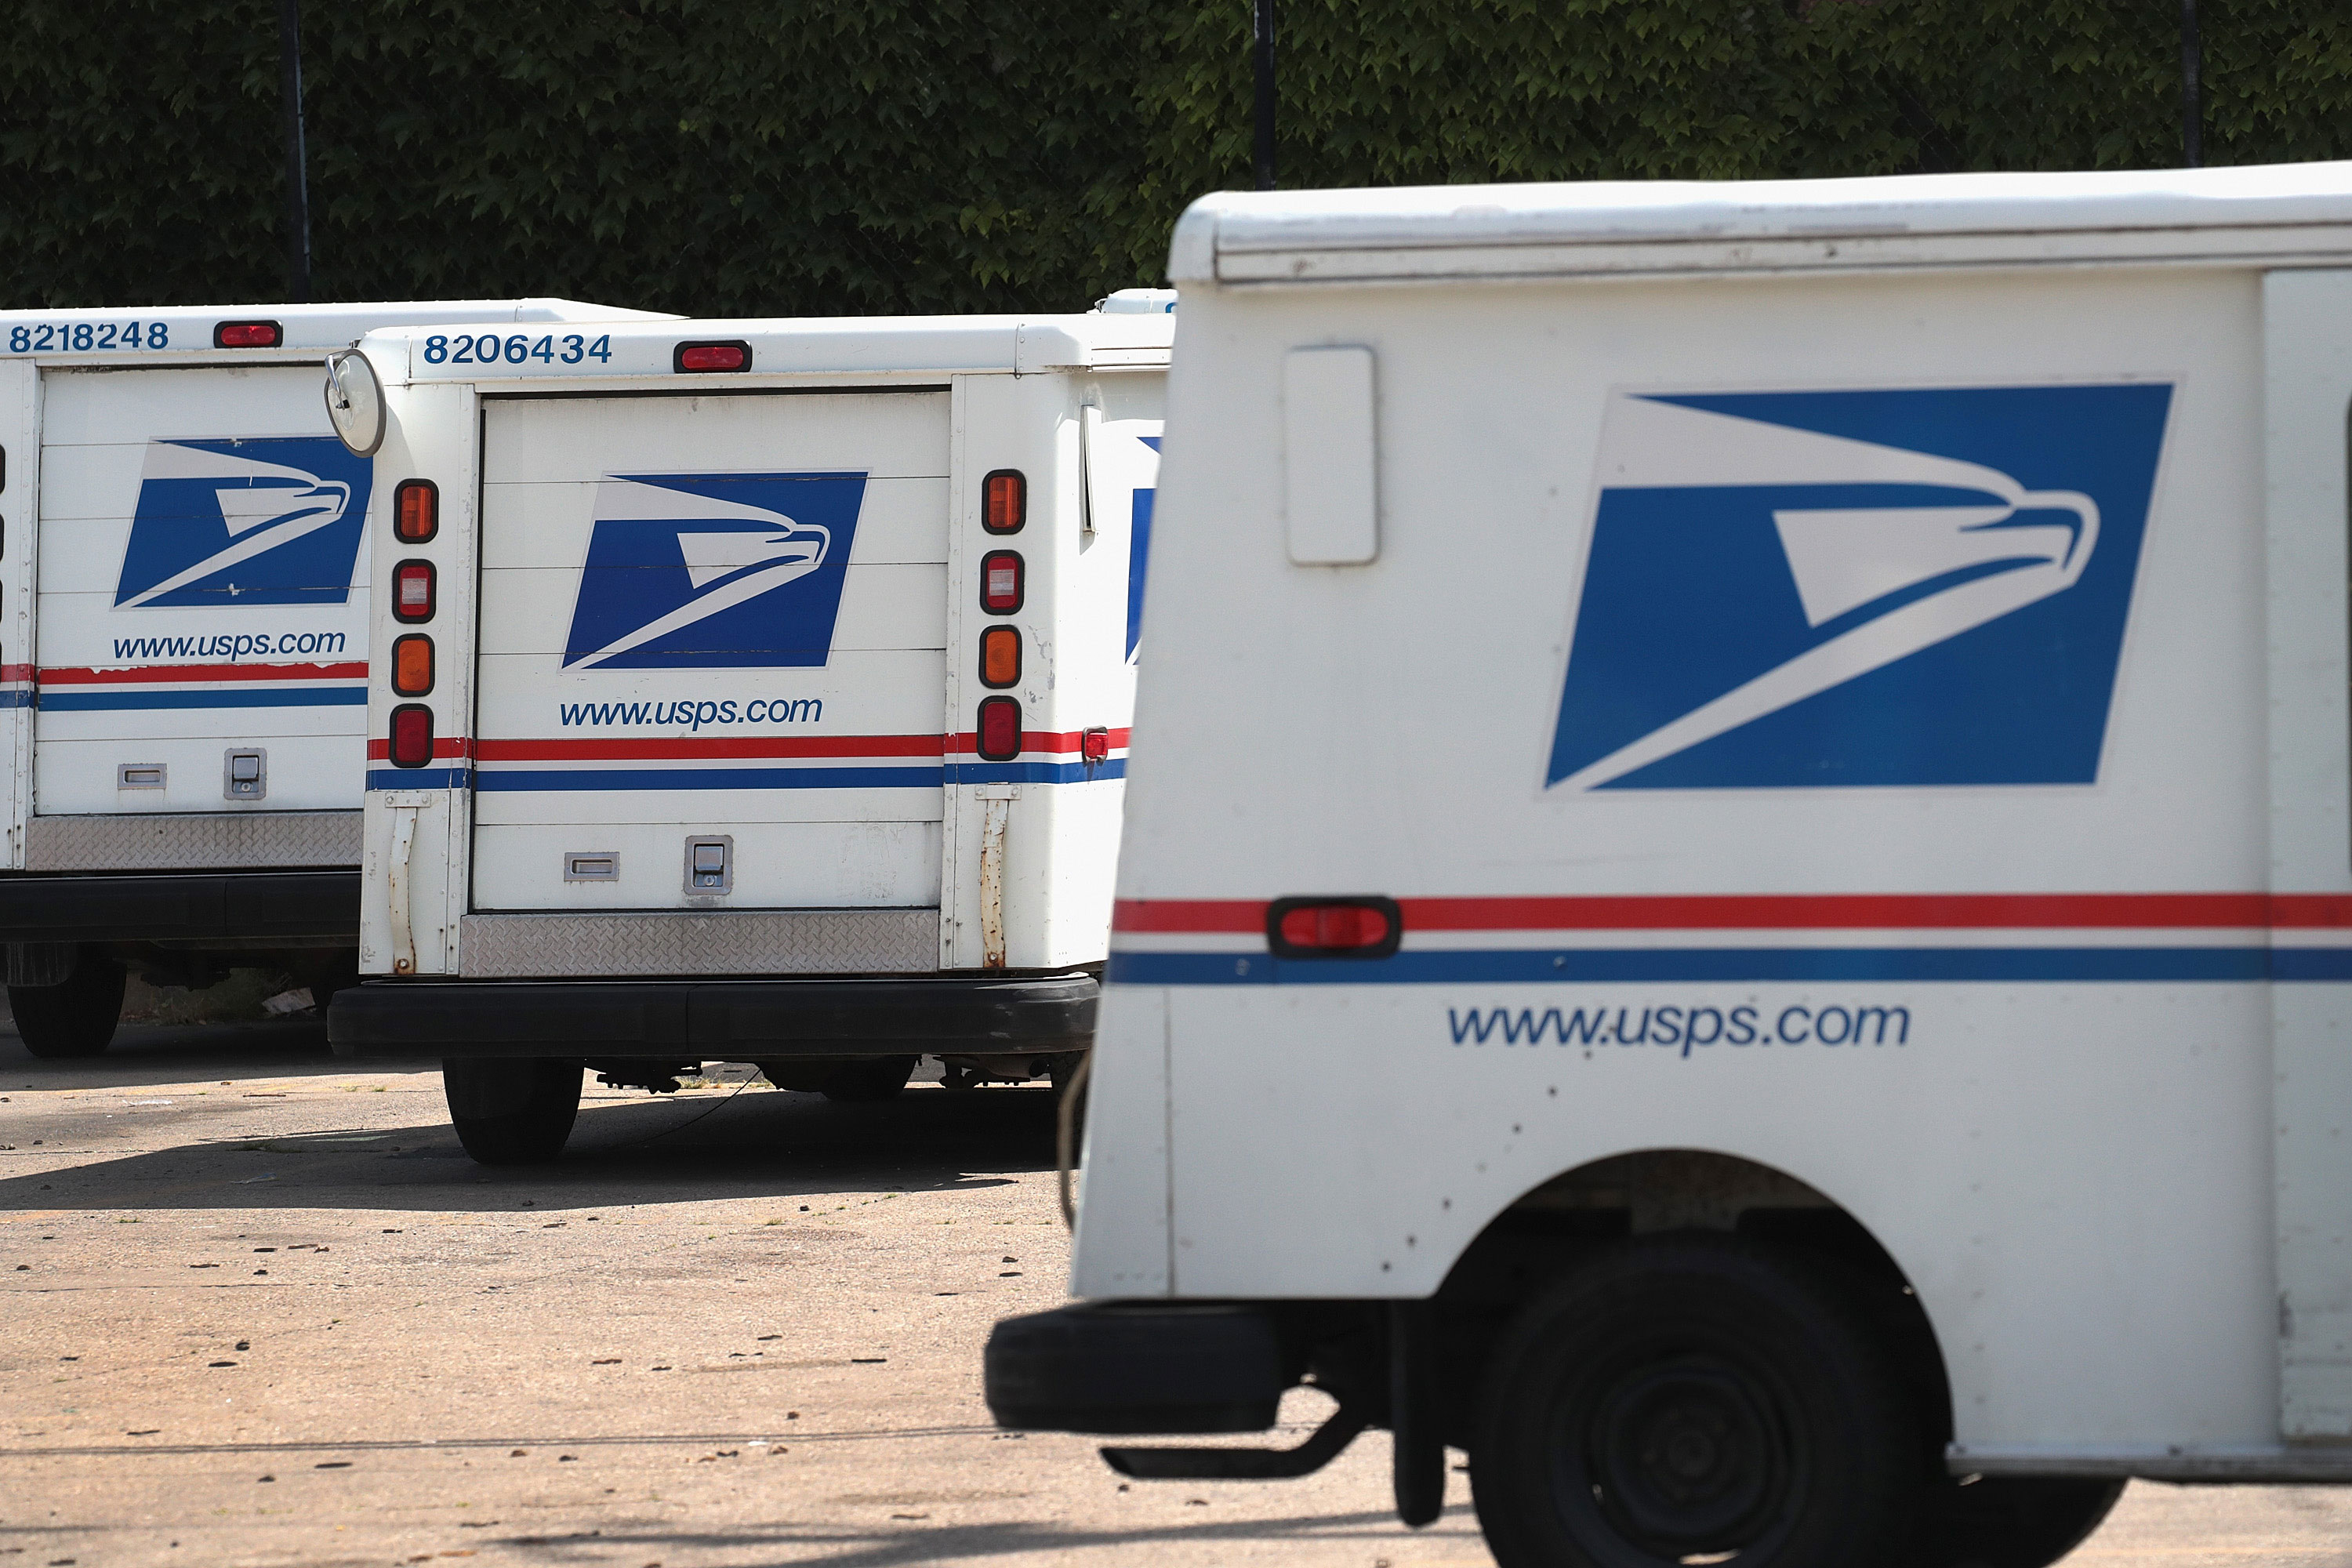 $50,000 reward offered after five mail carriers attacked with paintballs in DC and Maryland